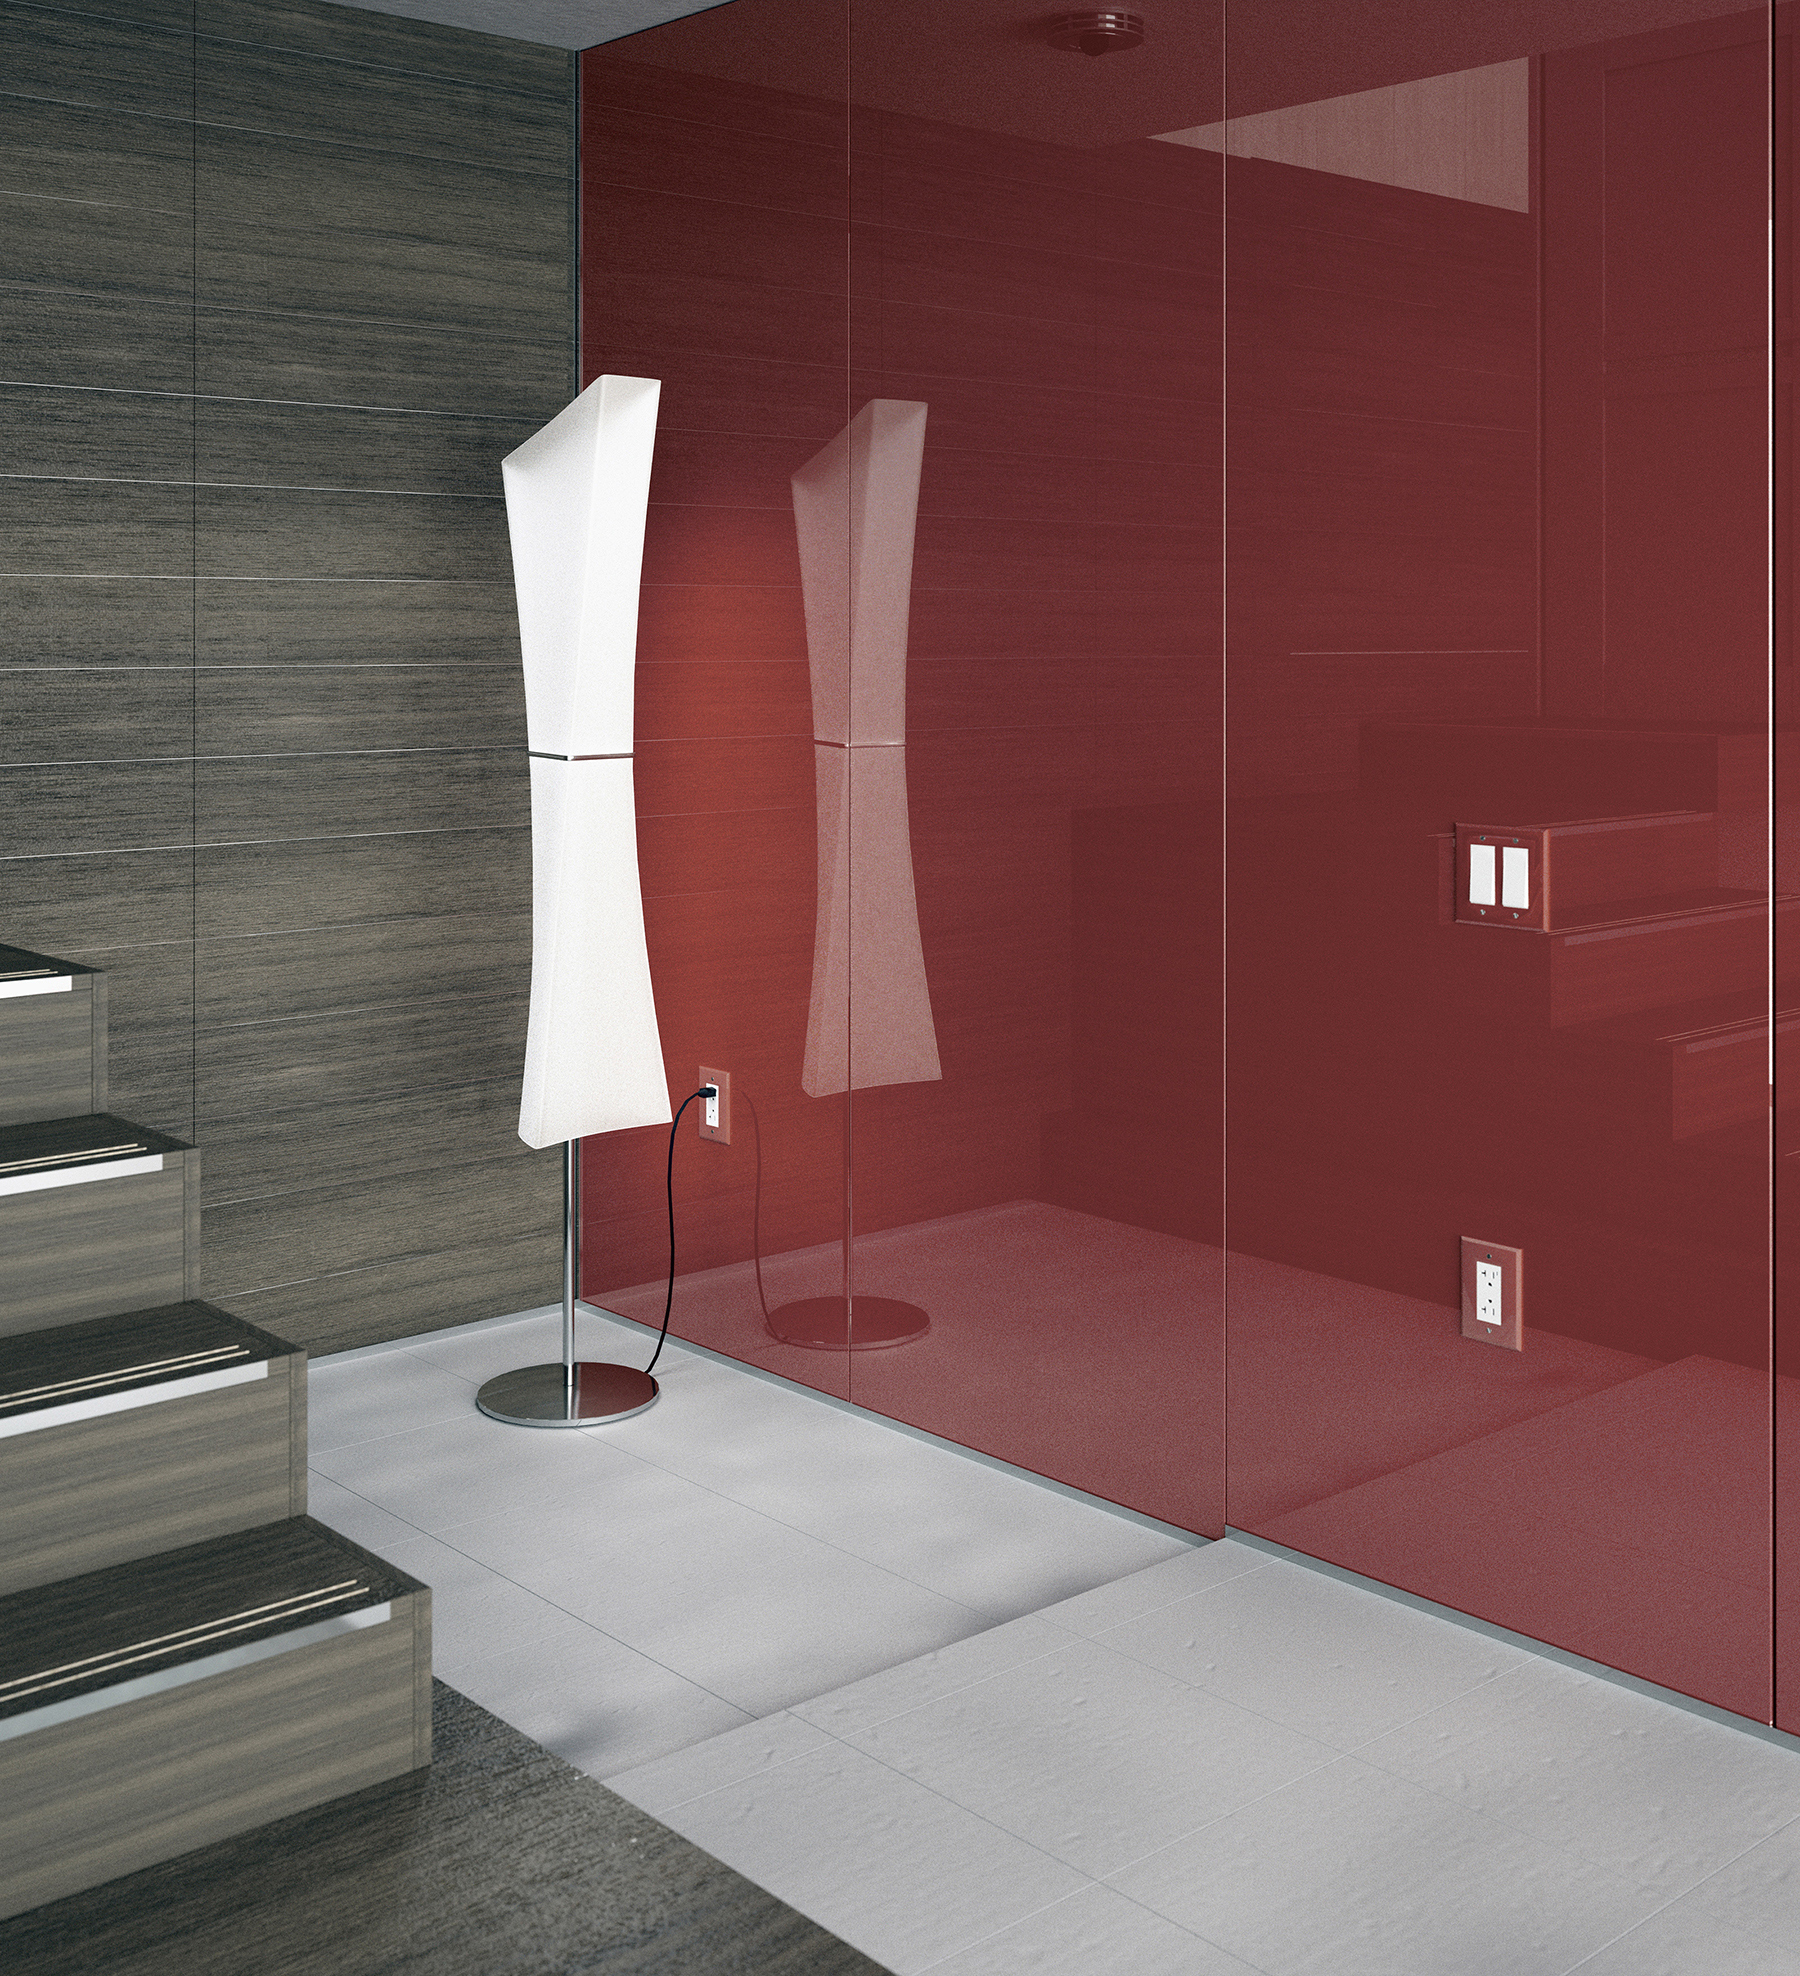 Bendheim Unveils BackPainted Architectural Glass in Marsala Pantone Color of the Year